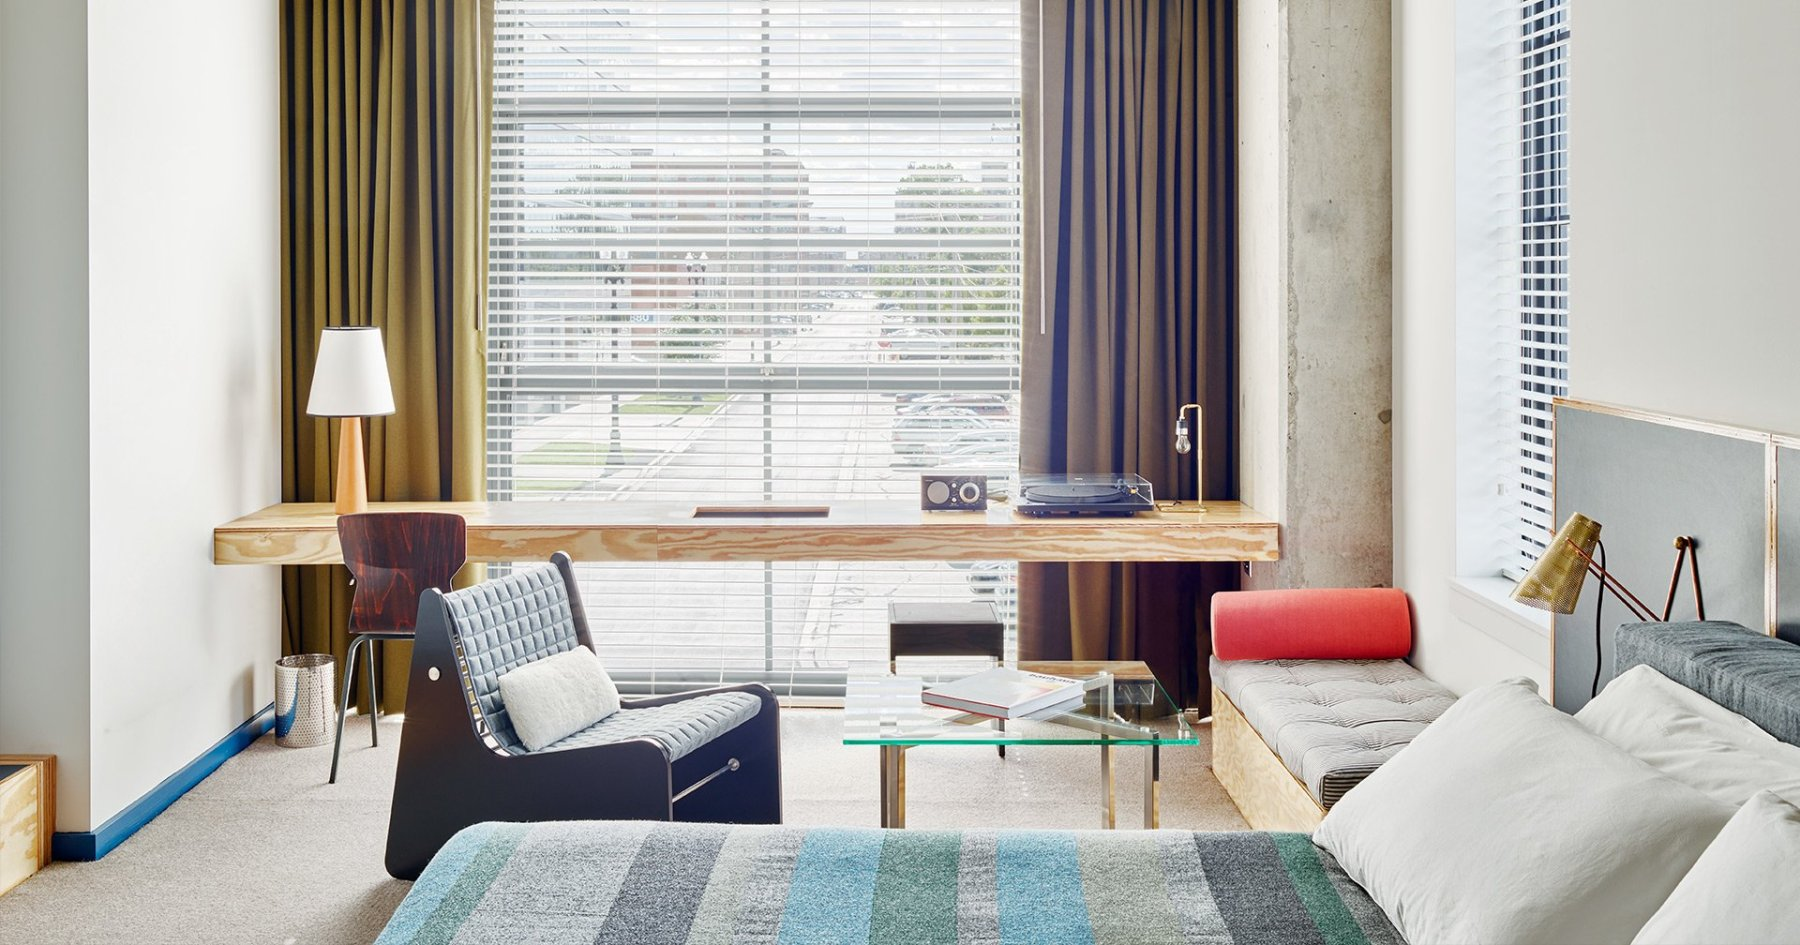 Five Design Ideas to Steal From the Ace Hotel - InsideHook